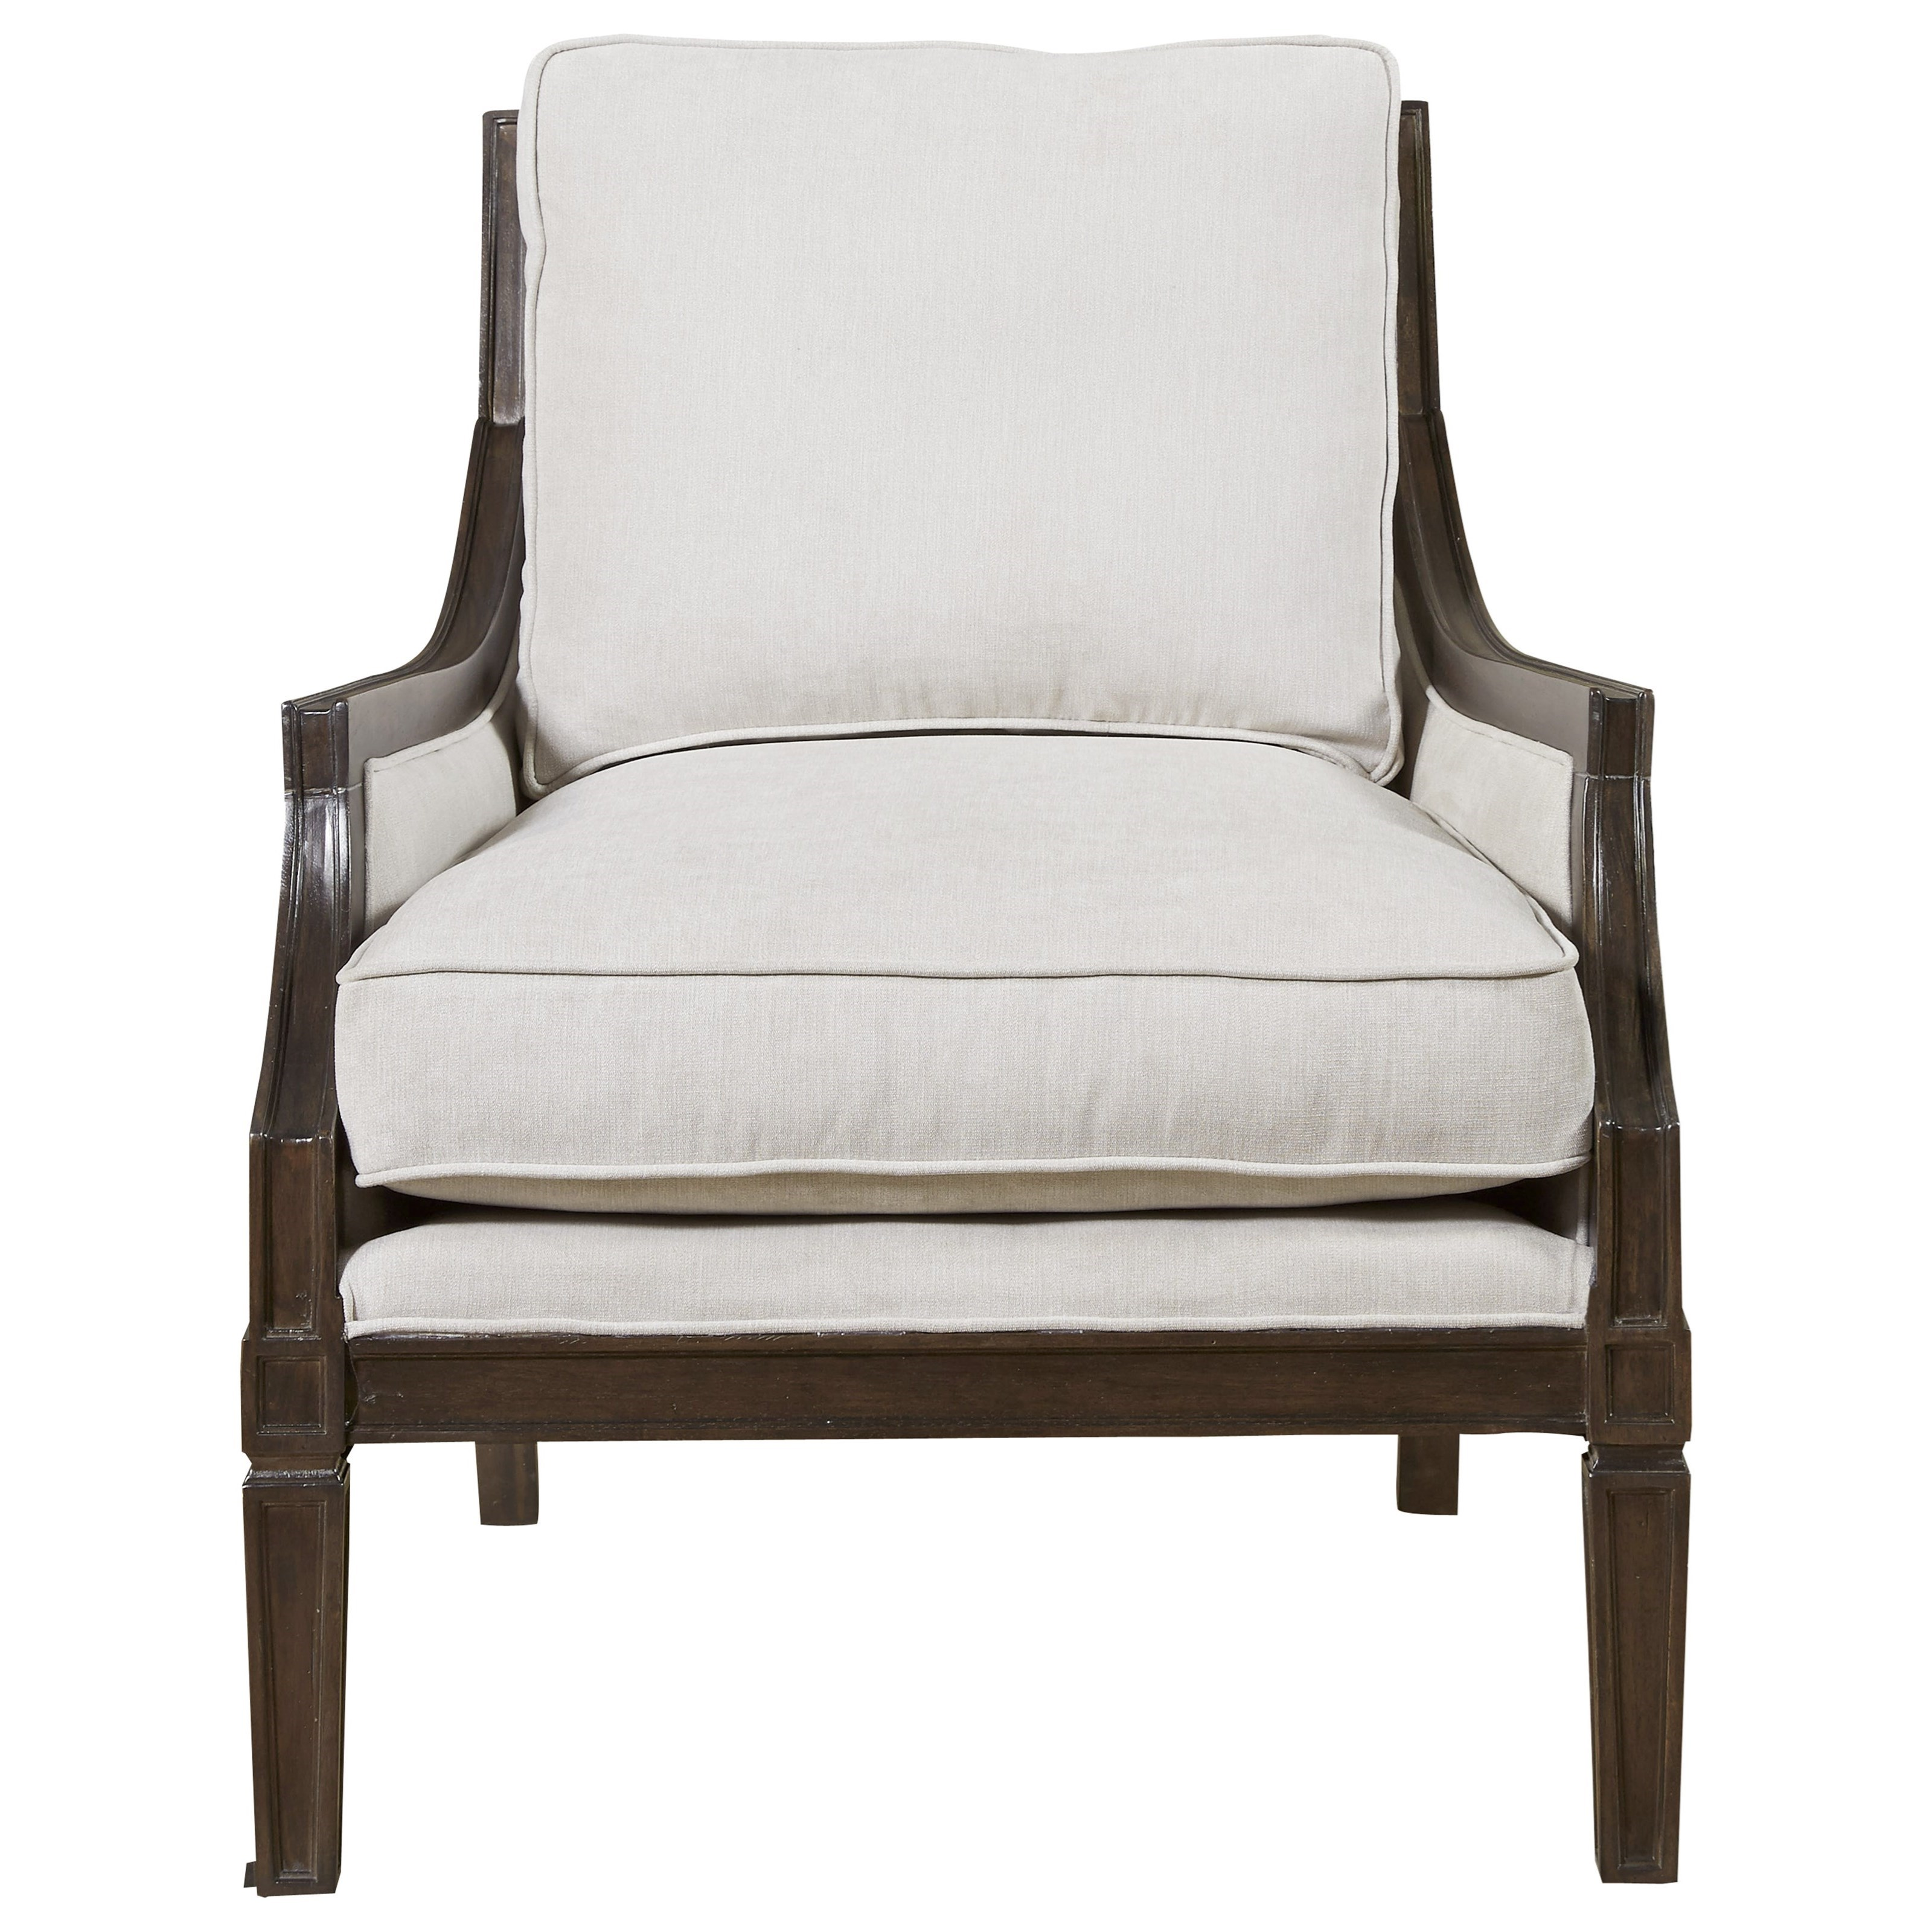 Franklin Street Accent Chair by Universal at Baer's Furniture